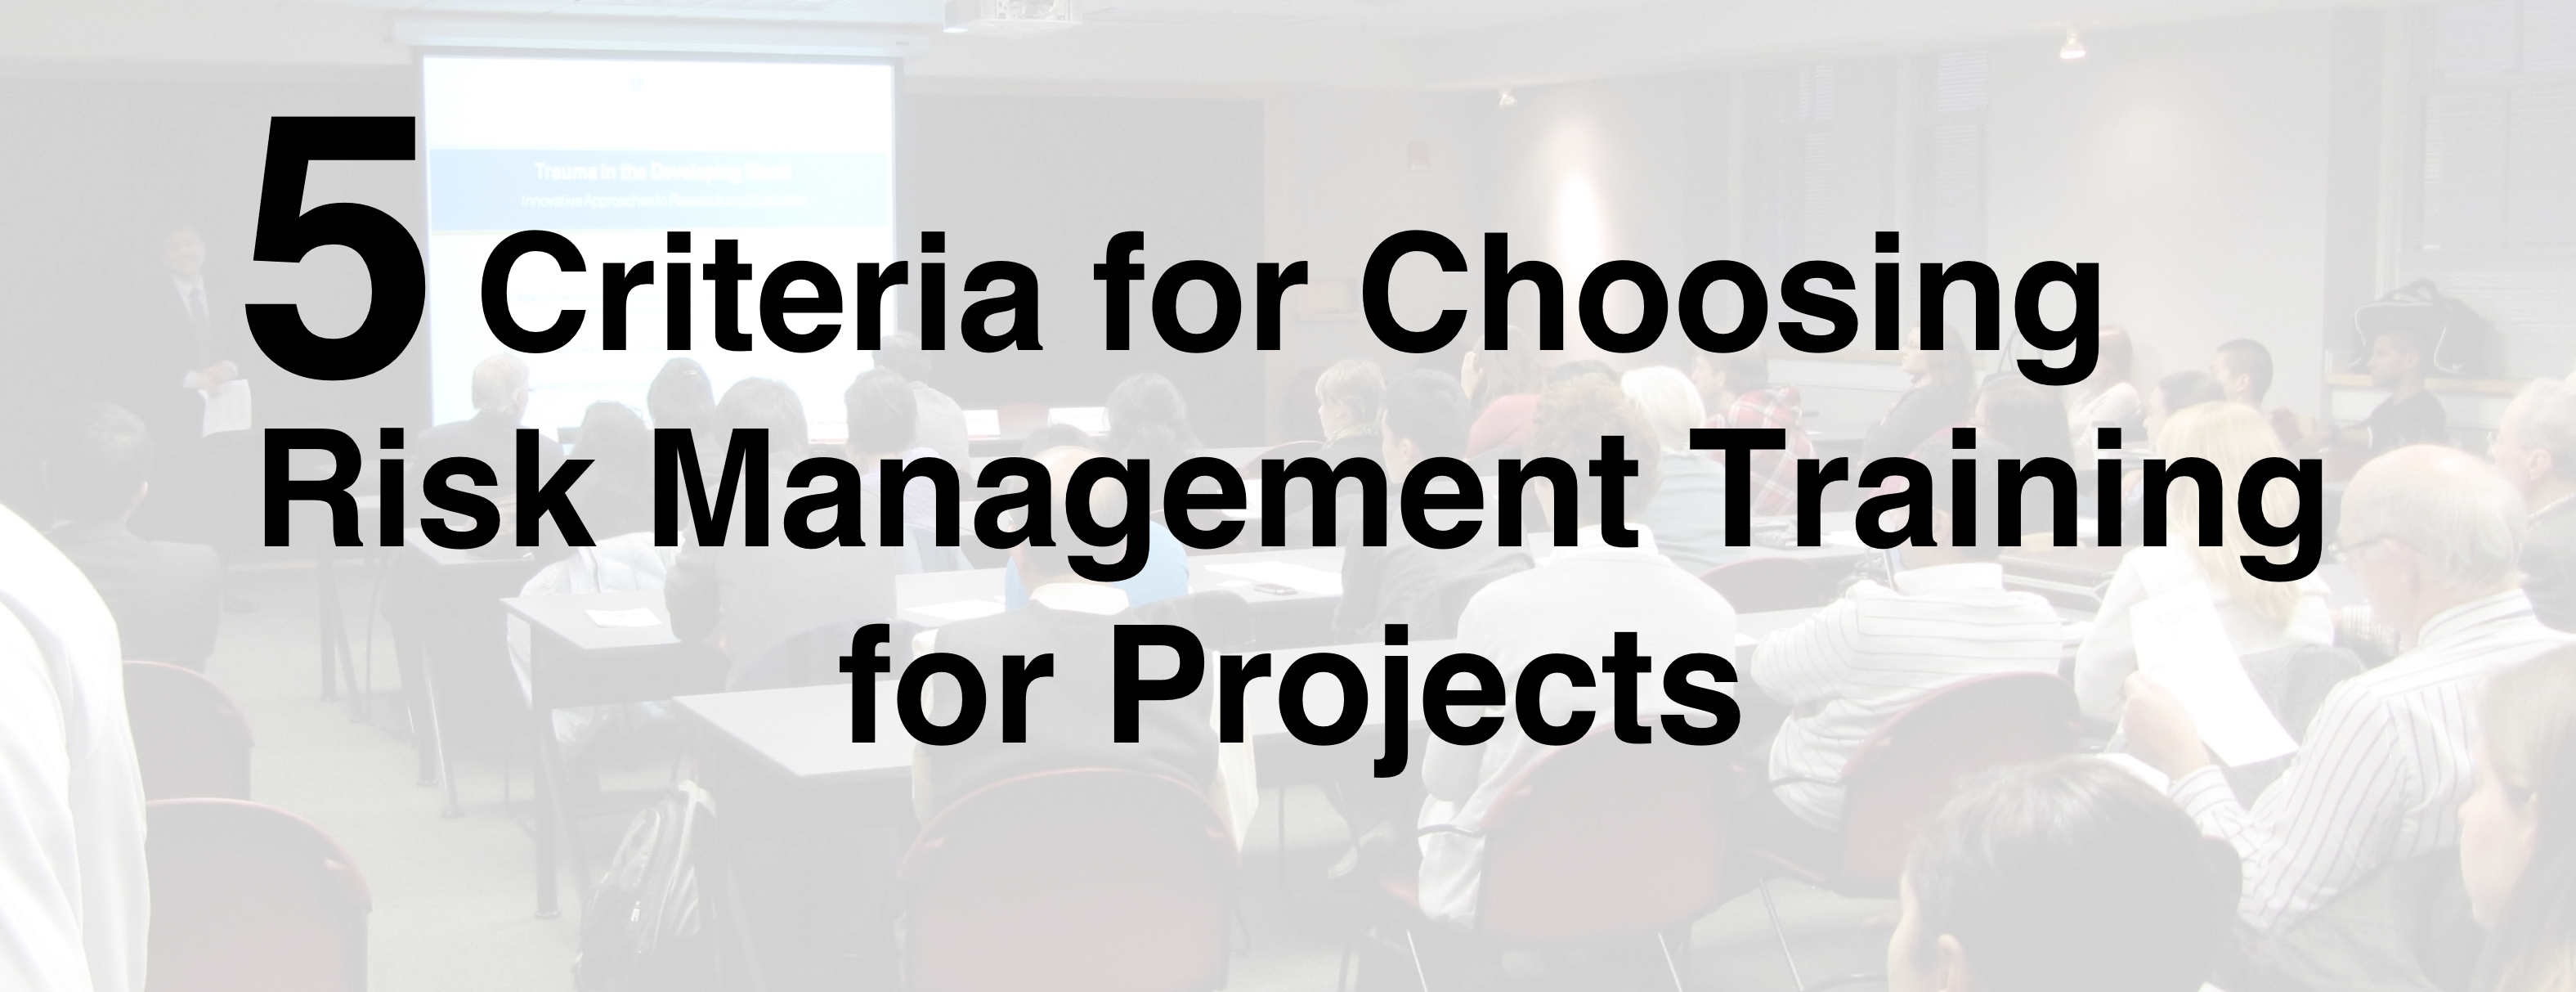 Choosing Risk Management Training for Projects